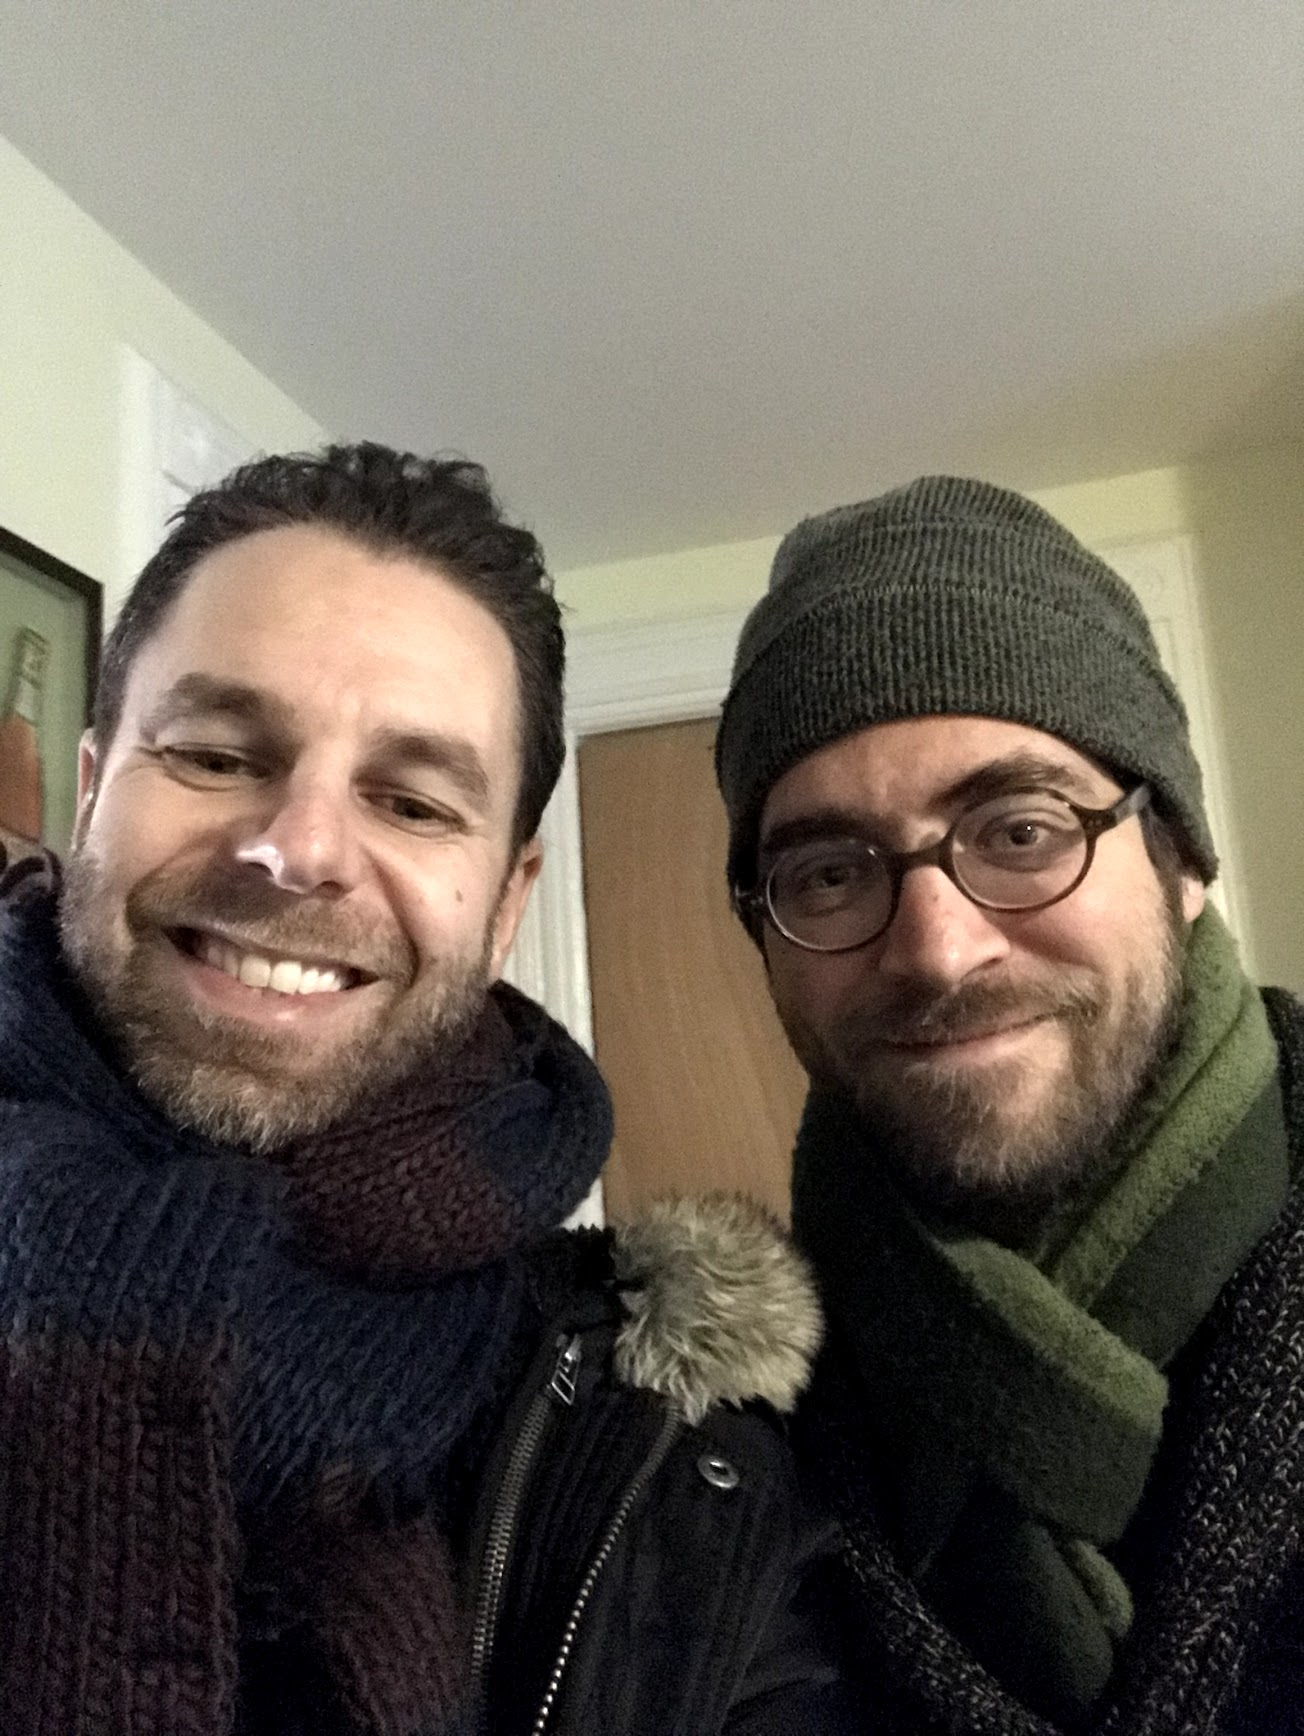 With Aaron Parks, Brooklyn, January 2019